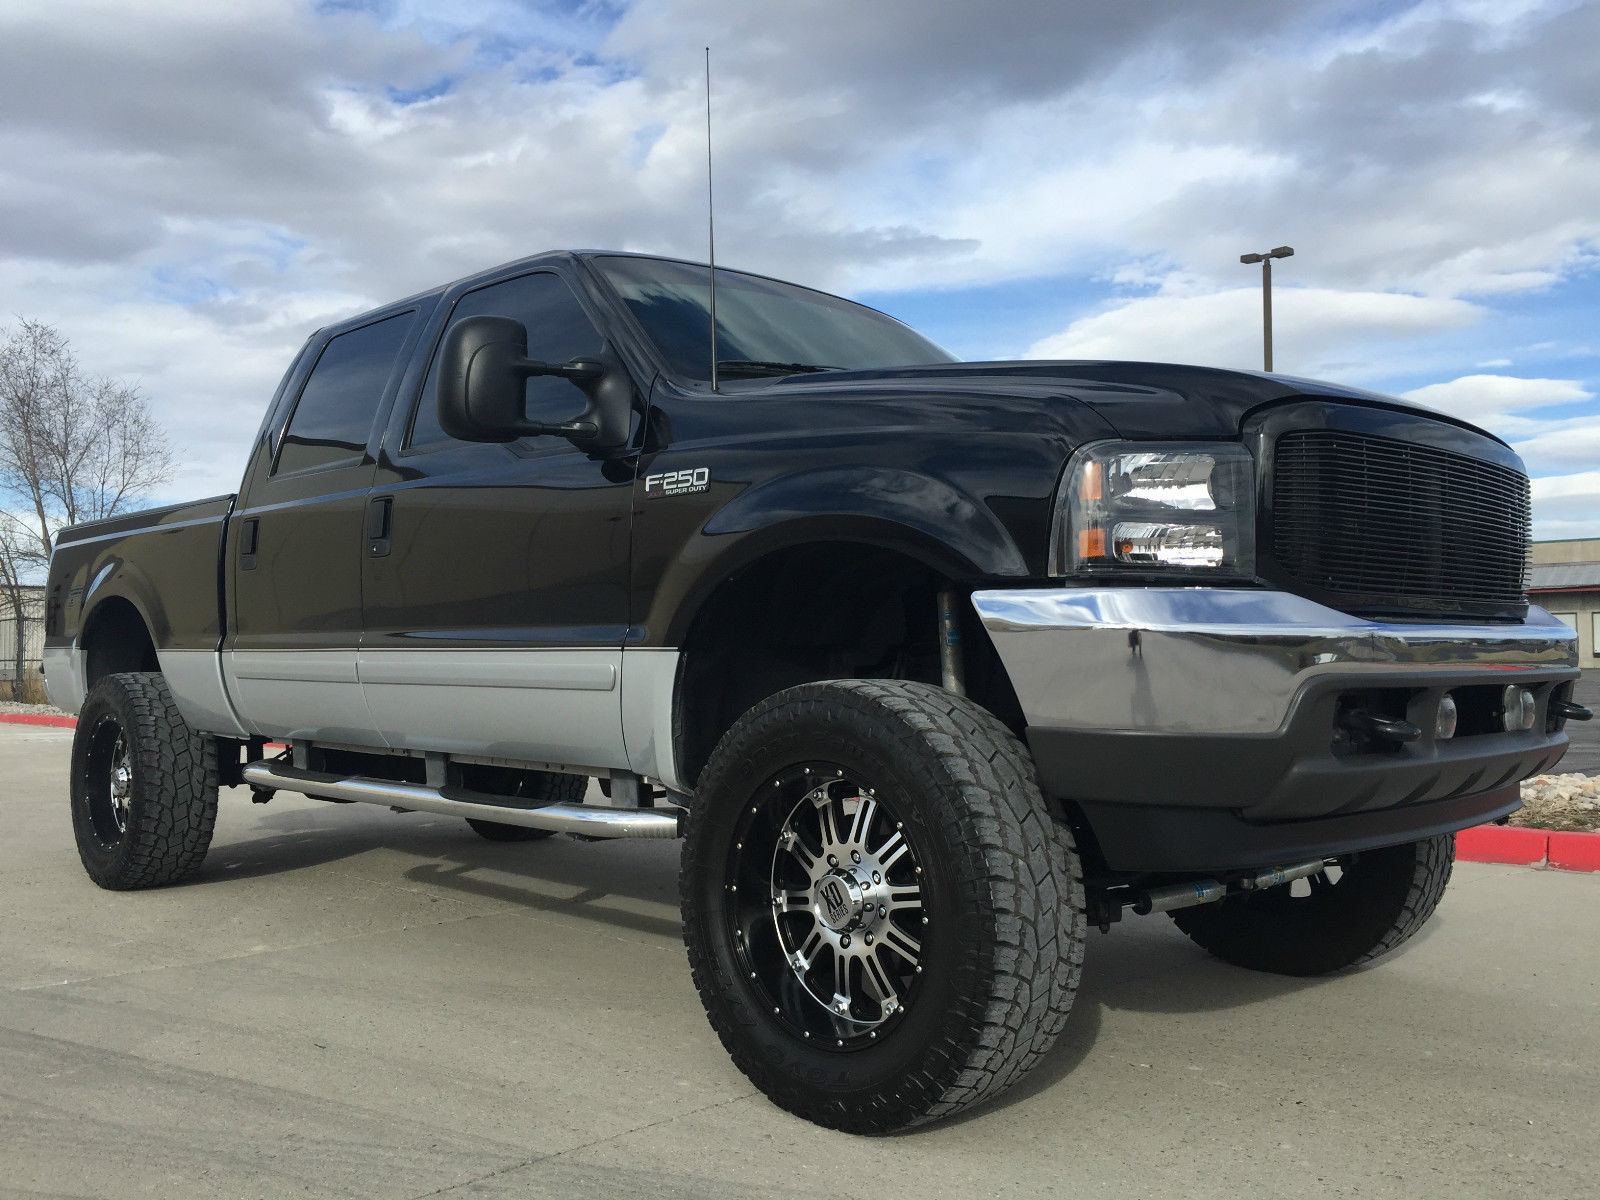 ford f250 crew cab shortbed 4x4 7 3 powerstroke turbo diesel for sale. Cars Review. Best American Auto & Cars Review